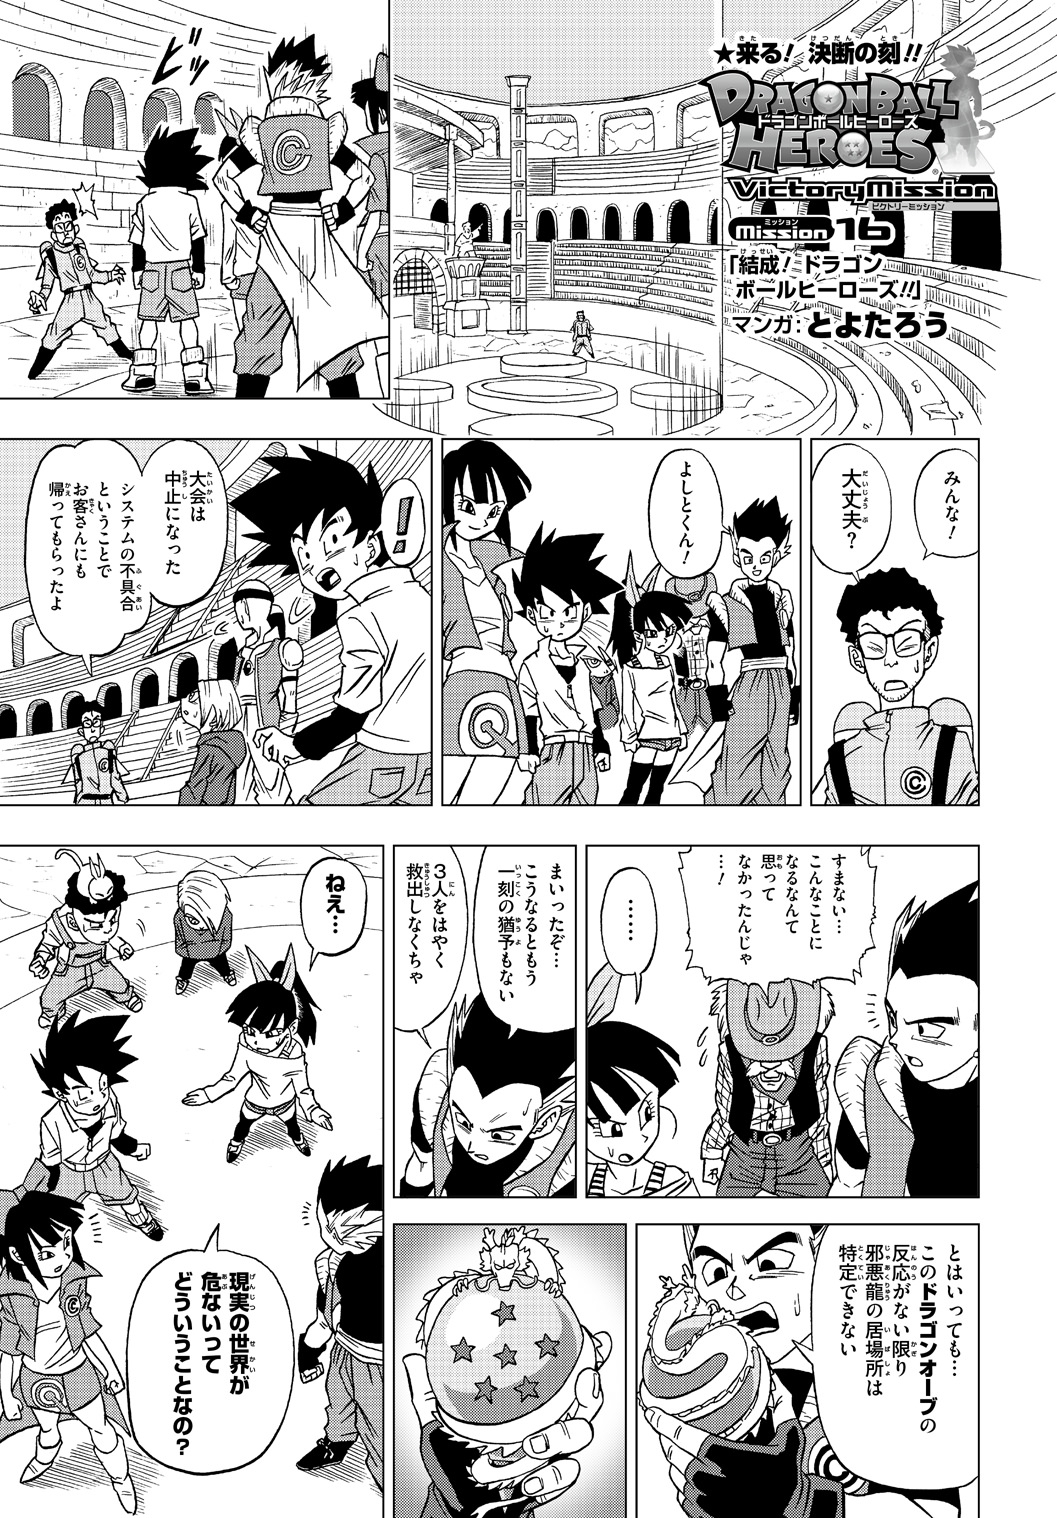 Dragon Ball Heroes Victory Mission Chapitre 016